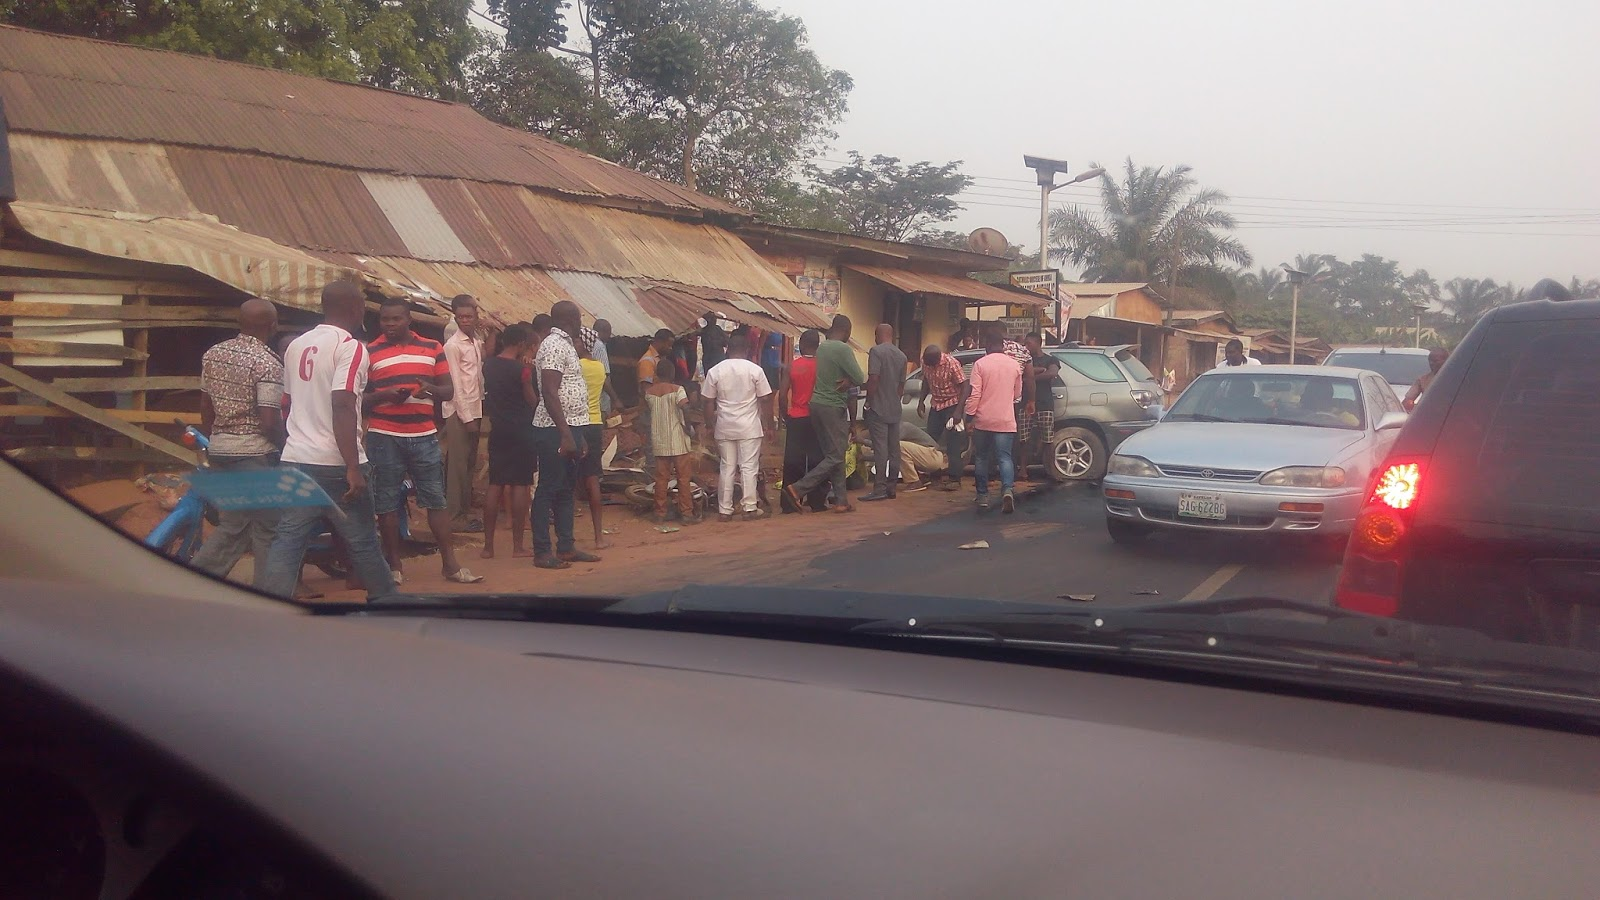 Scenes From An Accident Scene In Anambra - StanisWheels Blog - We